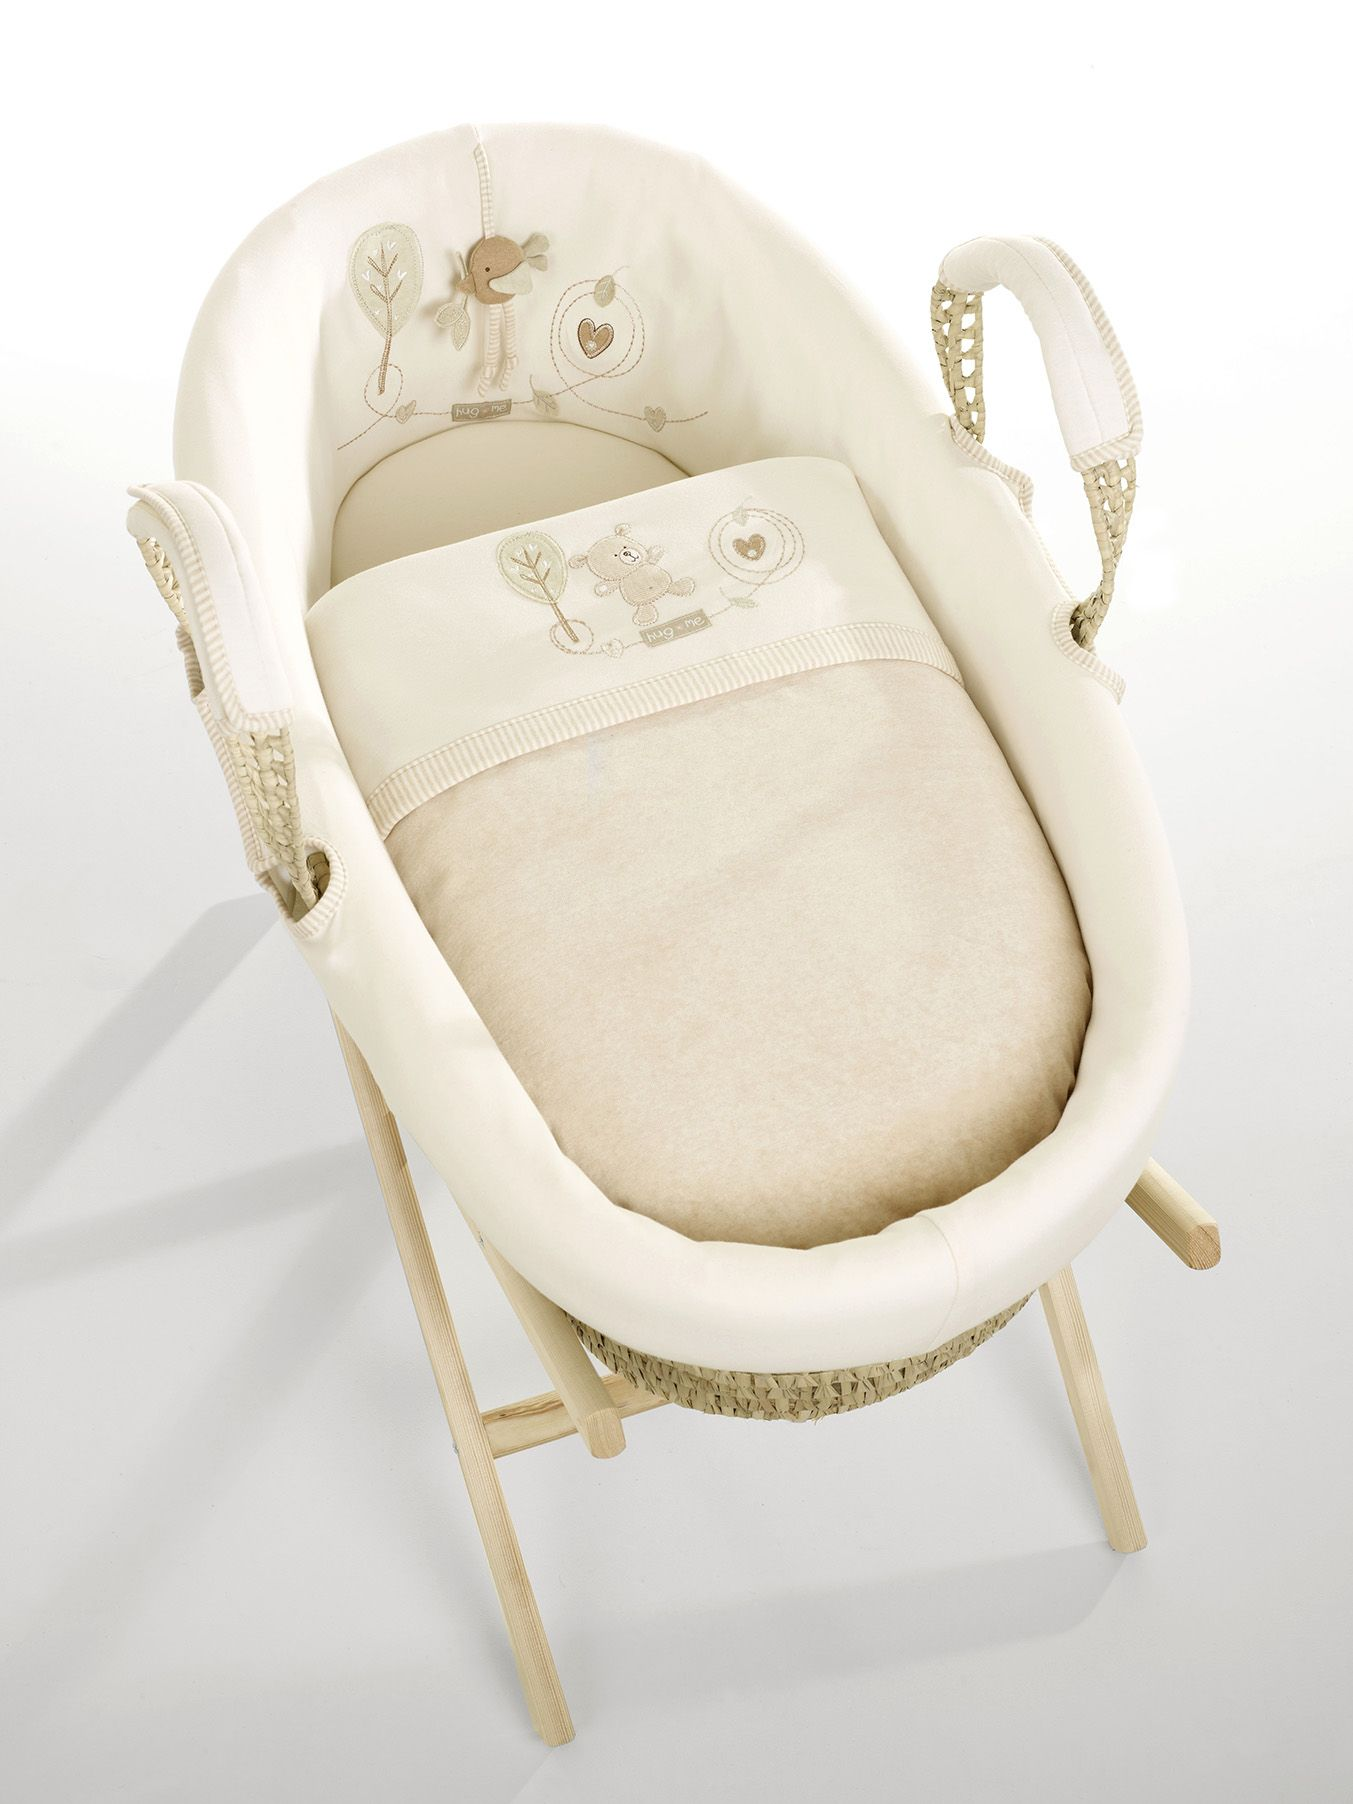 Hug Me Dressed Mosesbasket From Natures Purest Made From Organically Grown Naturally Coloured Cotton Organic Moses Basket Nature Baby Shower Pure Products